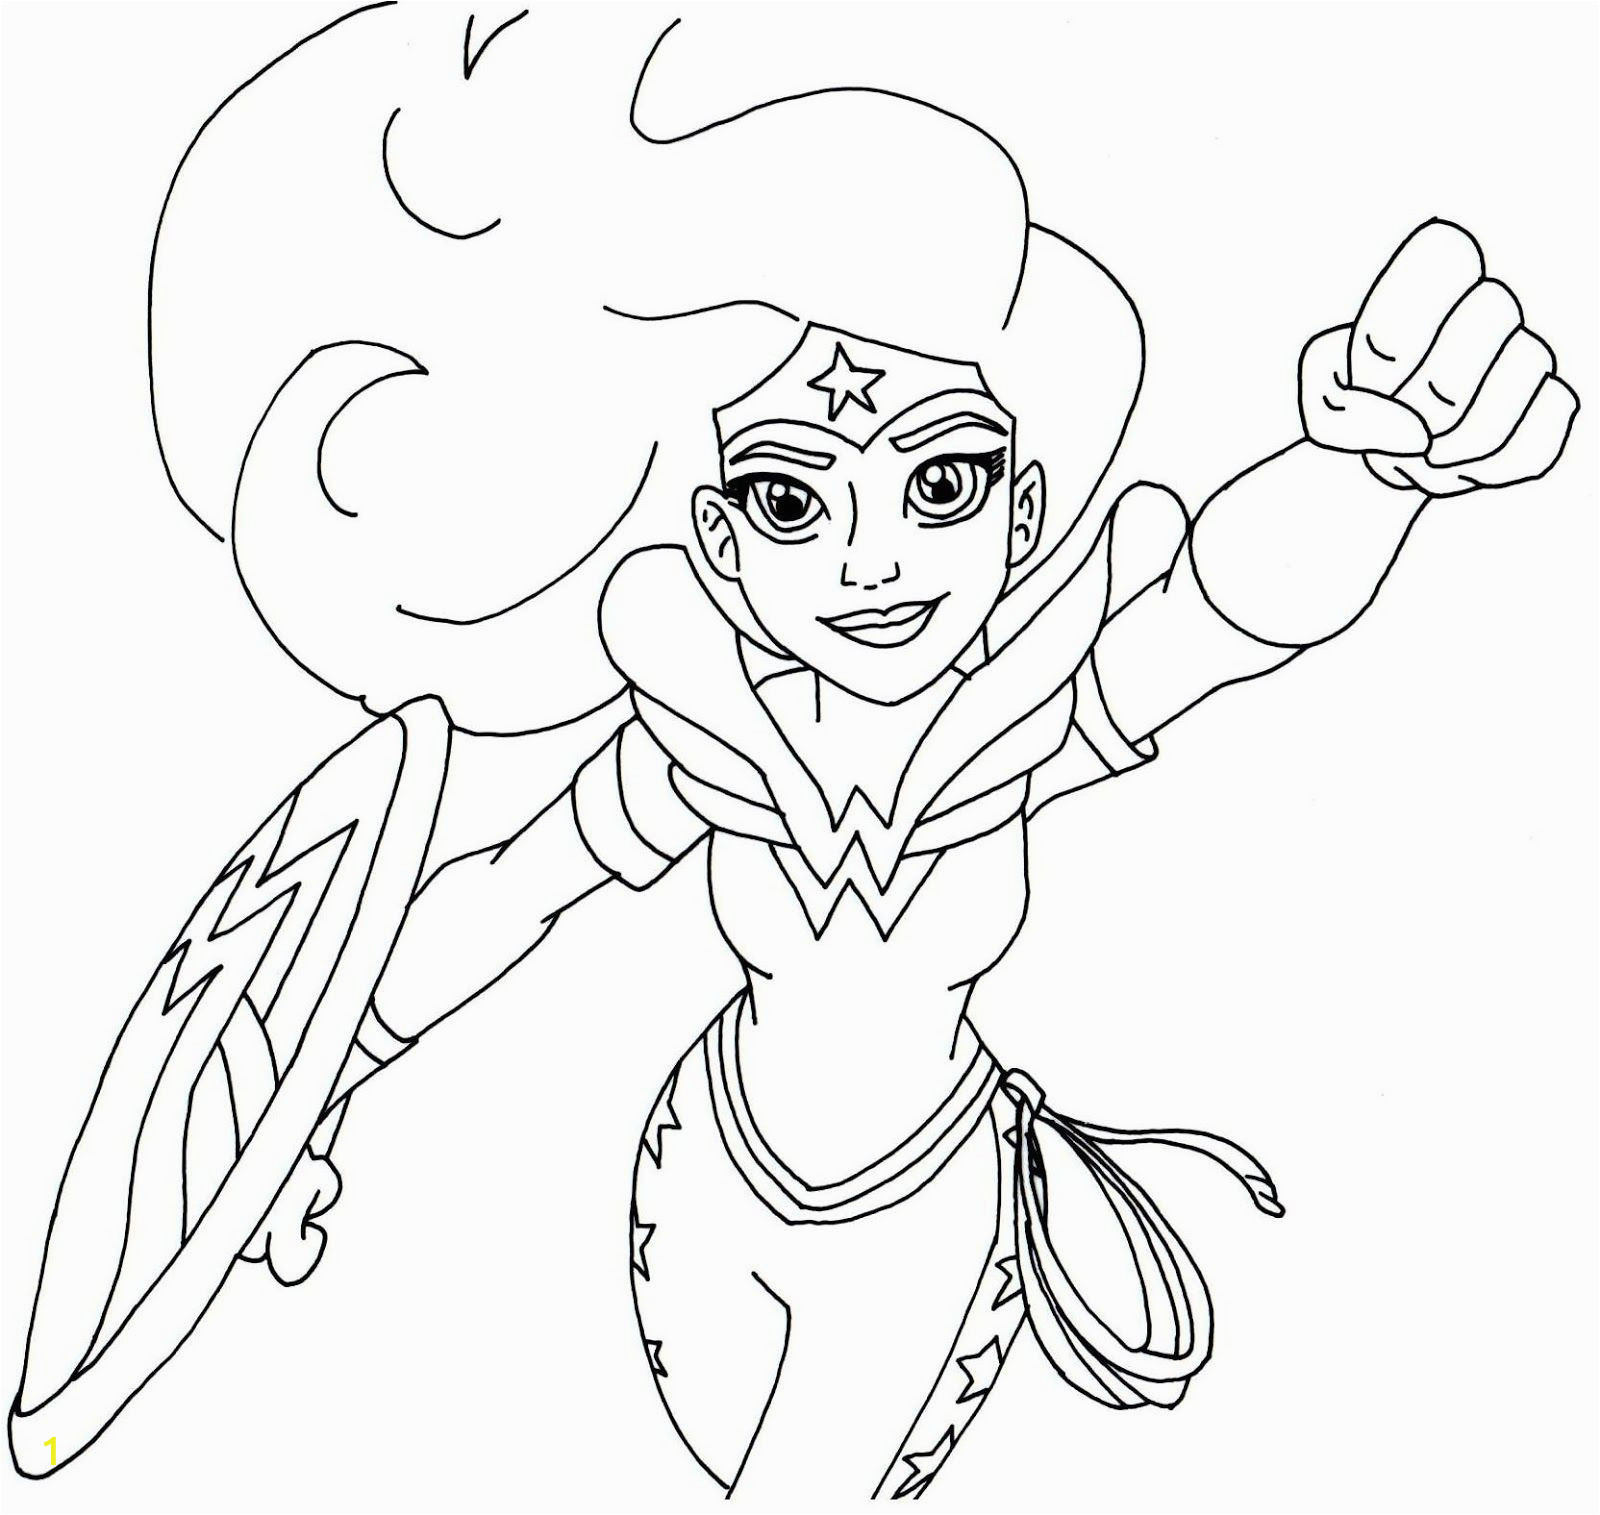 free printable super hero high coloring page for wonder woman more girl superhero pages are ing i ideas hulk girls and spider female wpart co spiderman with anime verse